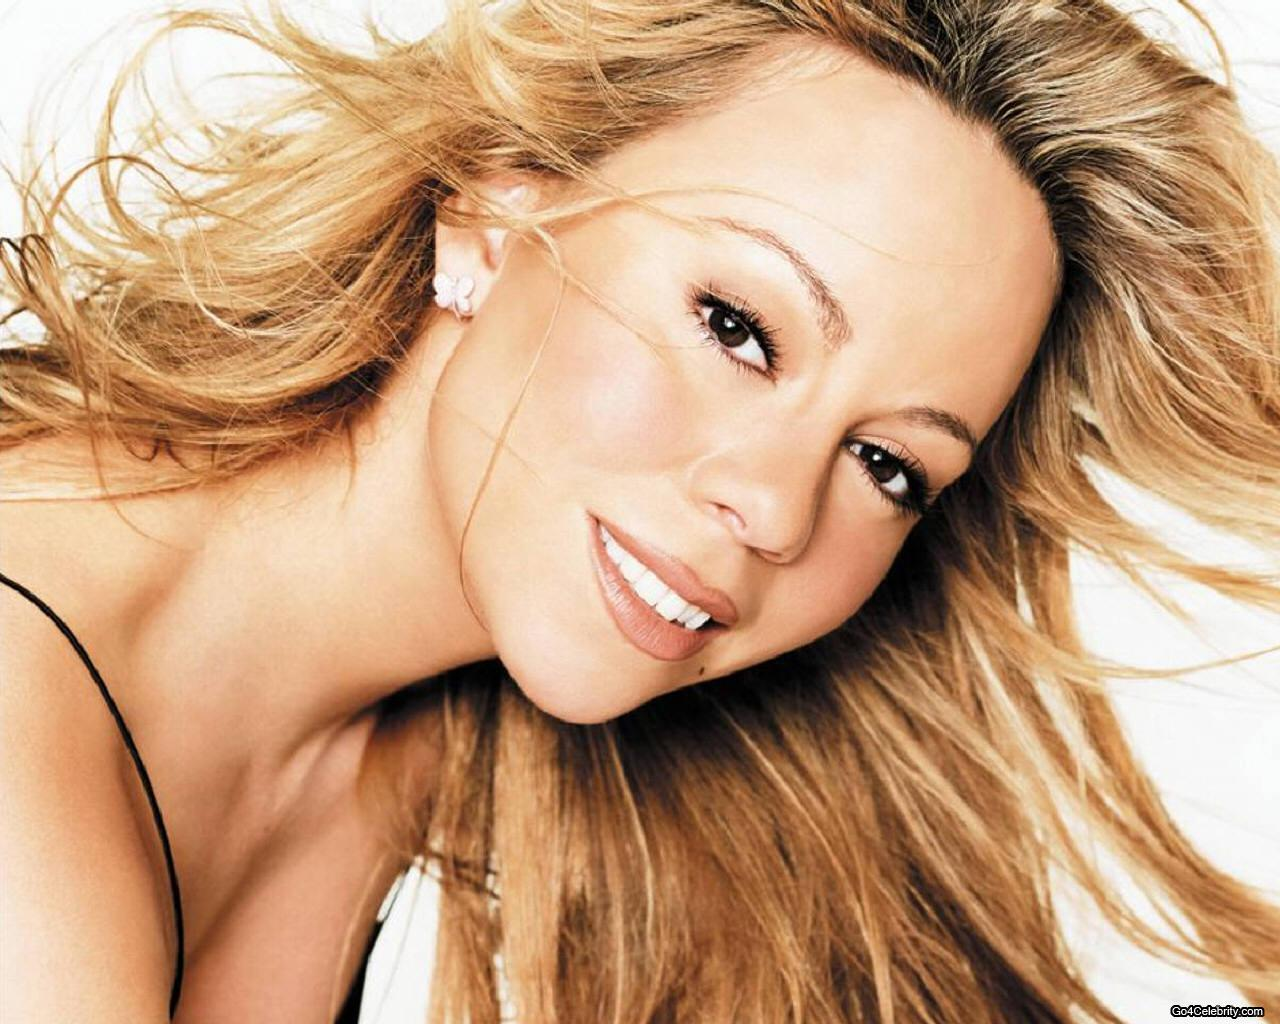 Mariah Carey - Mariah Carey Wallpaper (583149) - Fanpop Mariah Carey Songs